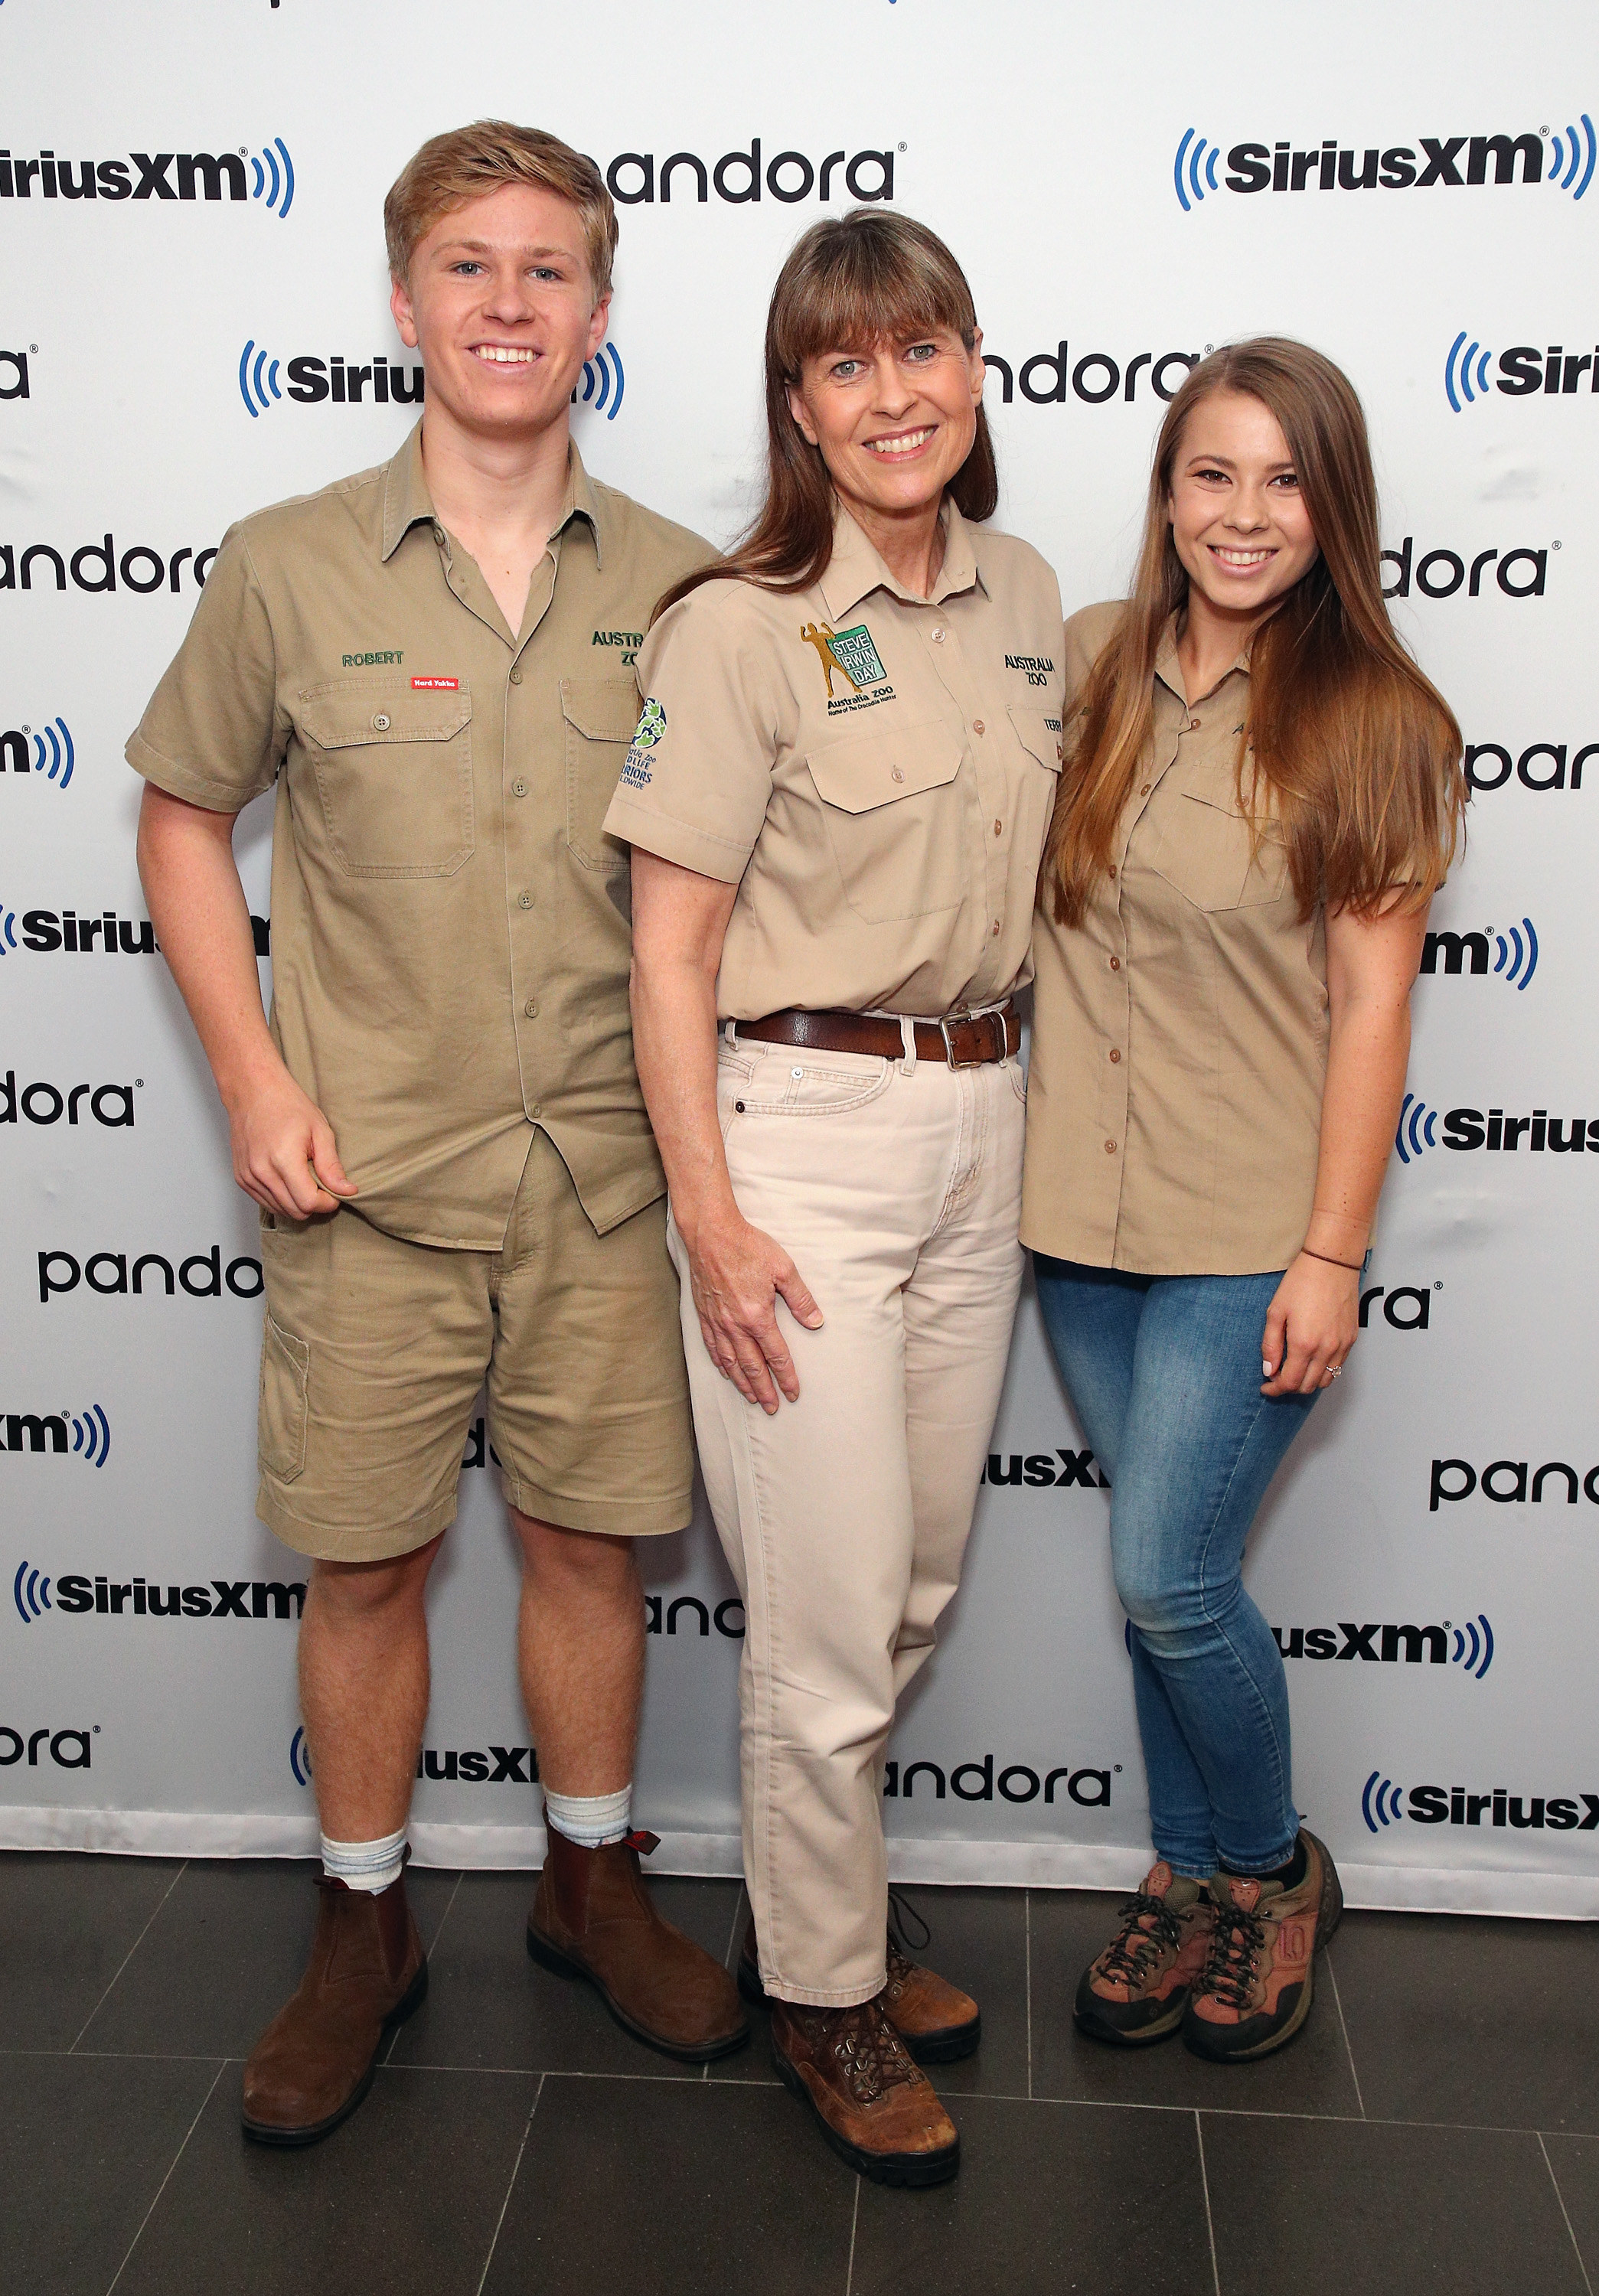 The Irwin family at an event together